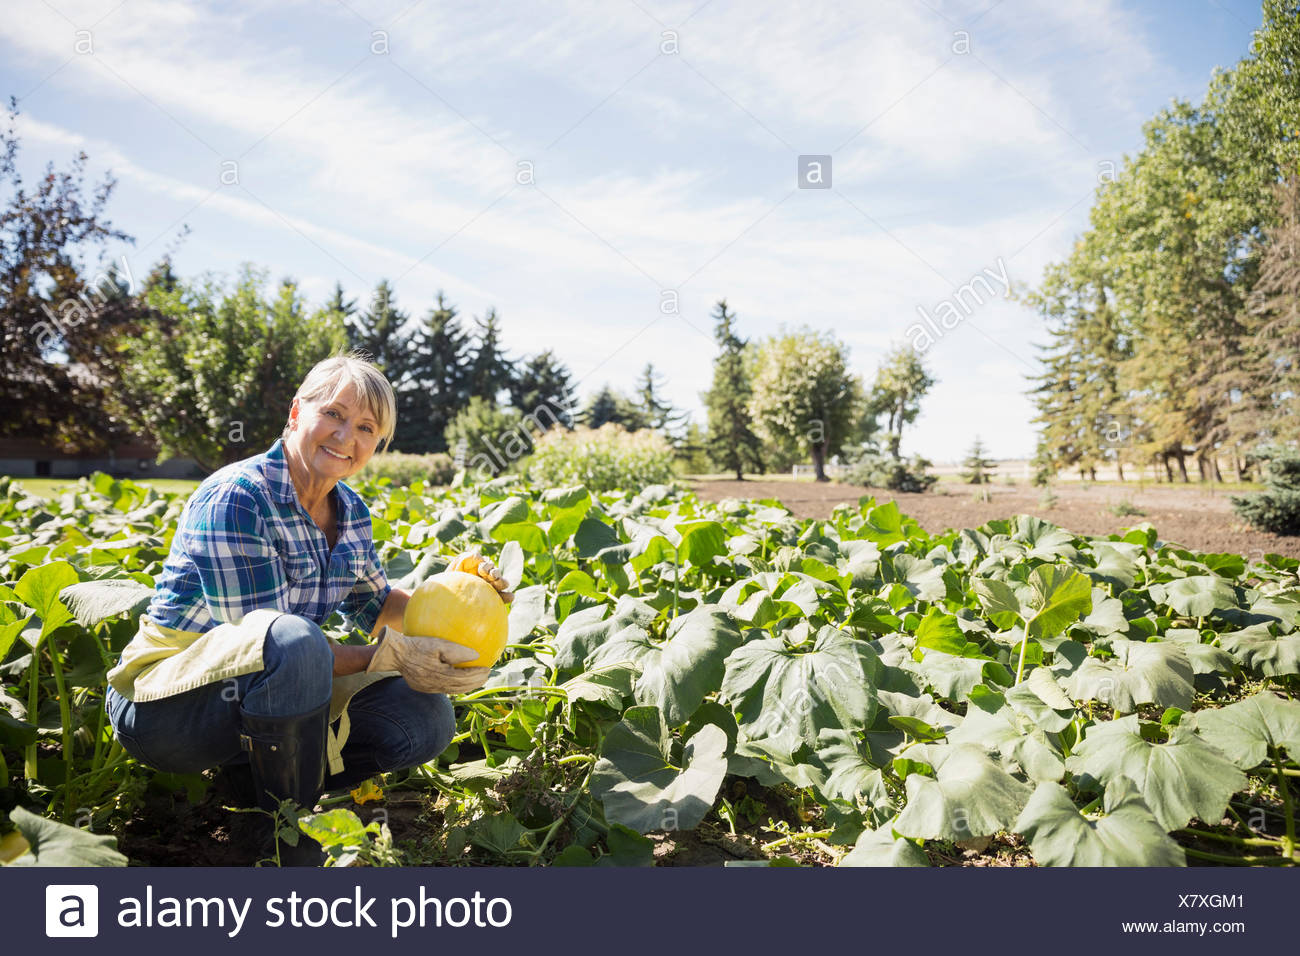 Portrait of woman harvesting squash in vegetable garden - Stock Image